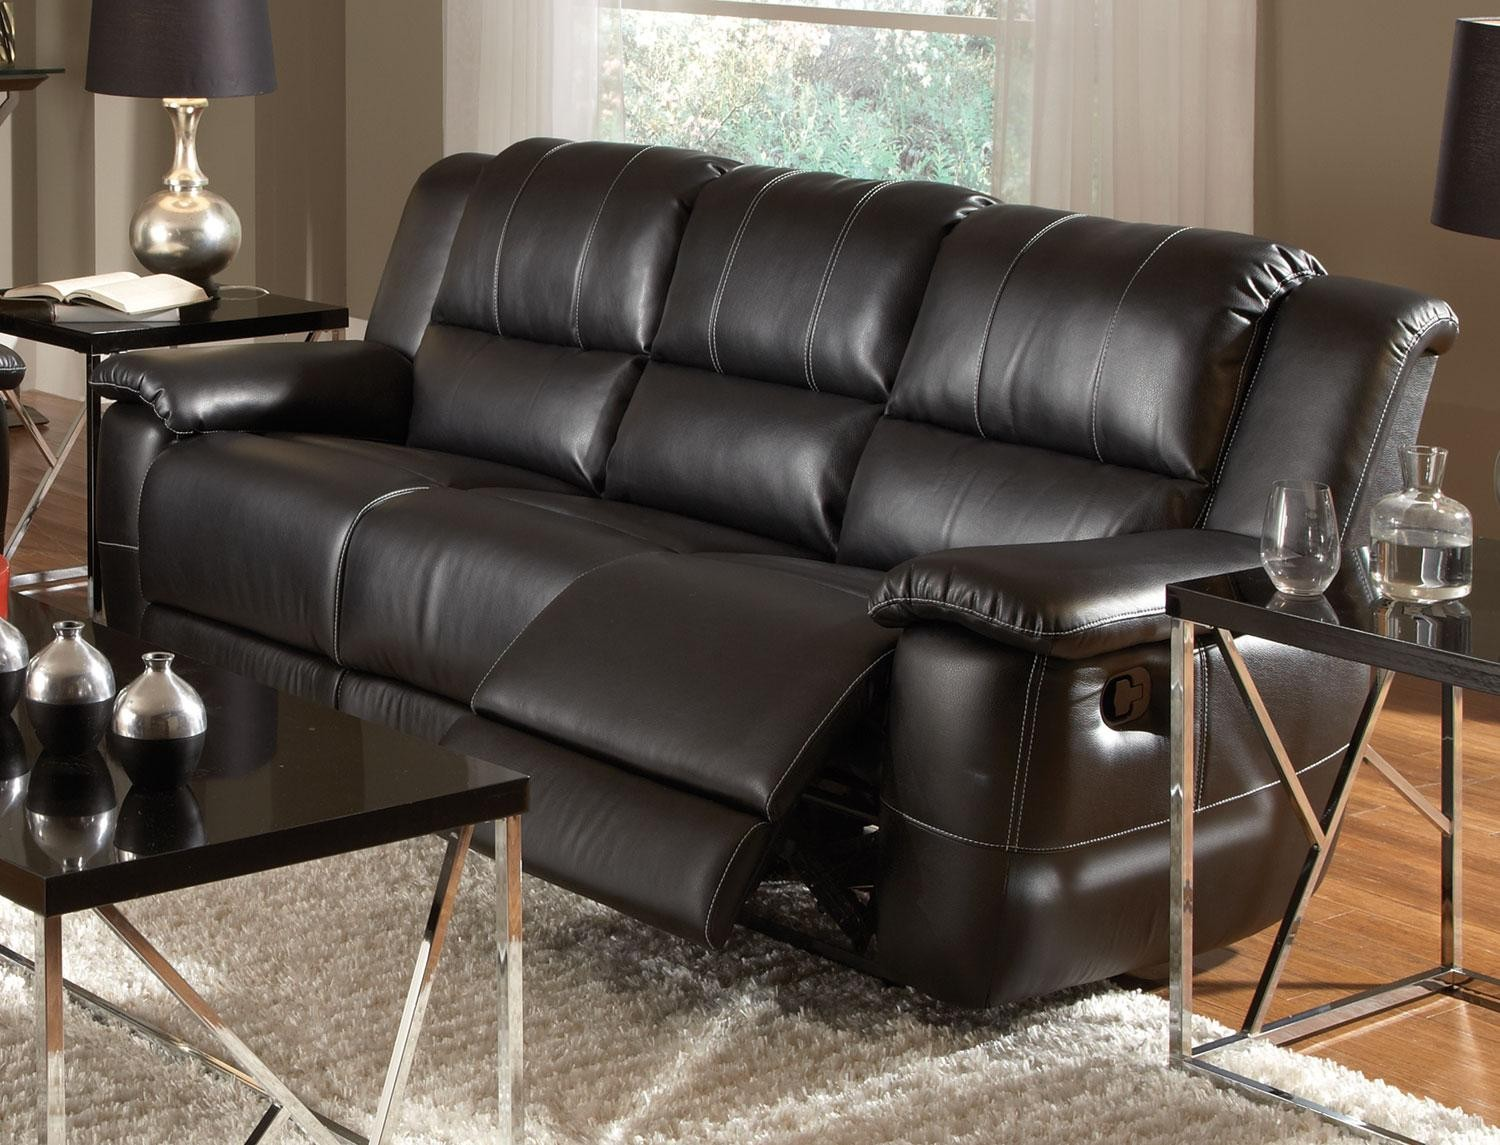 100 leather recliner sofa sets leather sofa sets for living